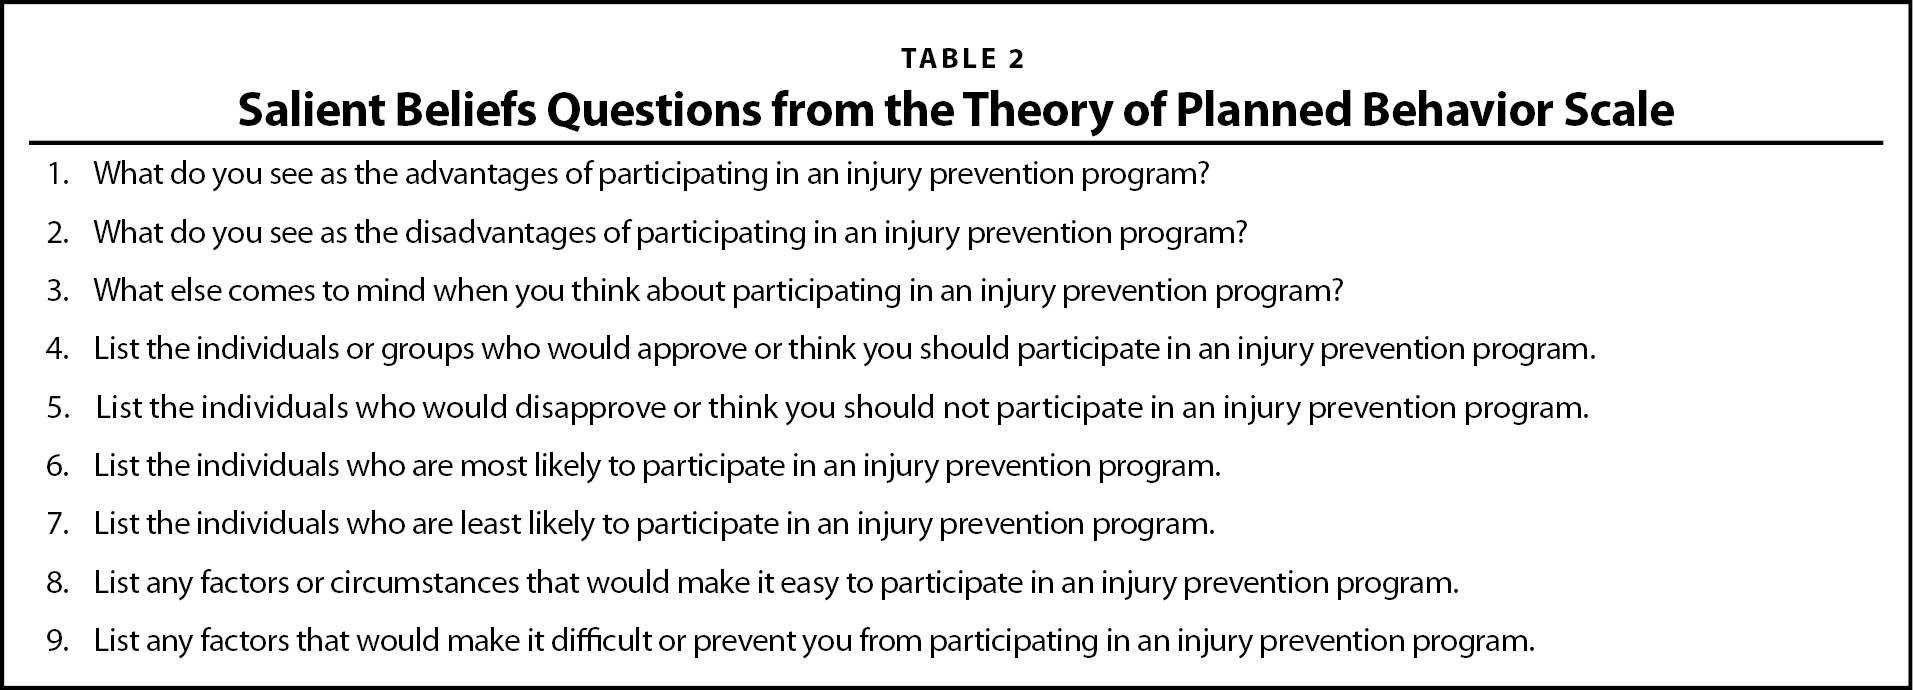 Salient Beliefs Questions from the Theory of Planned Behavior Scale